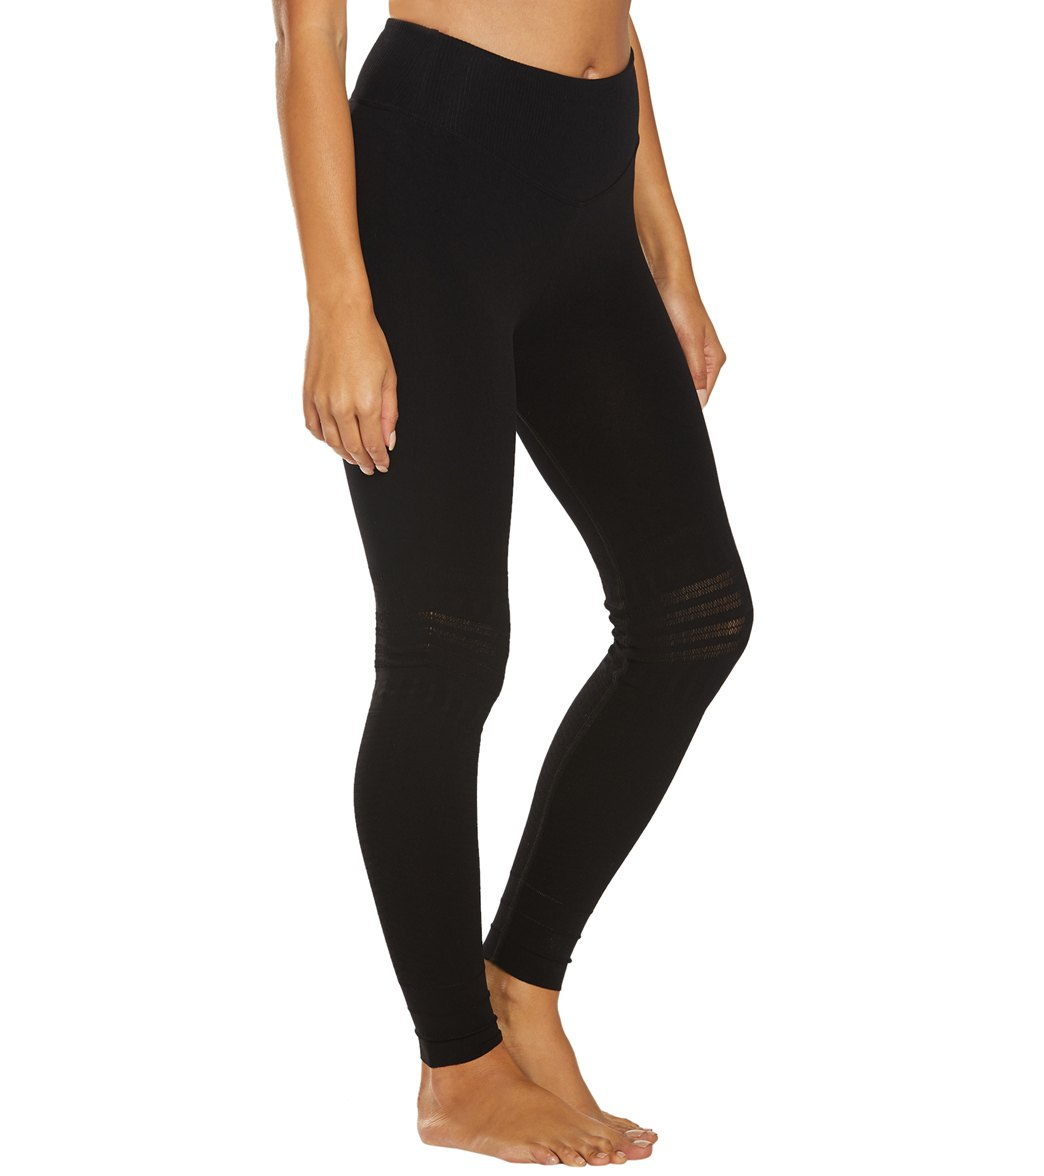 dc8b068300cb8 Women's Yoga Pants & Workout Tights at YogaOutlet.com